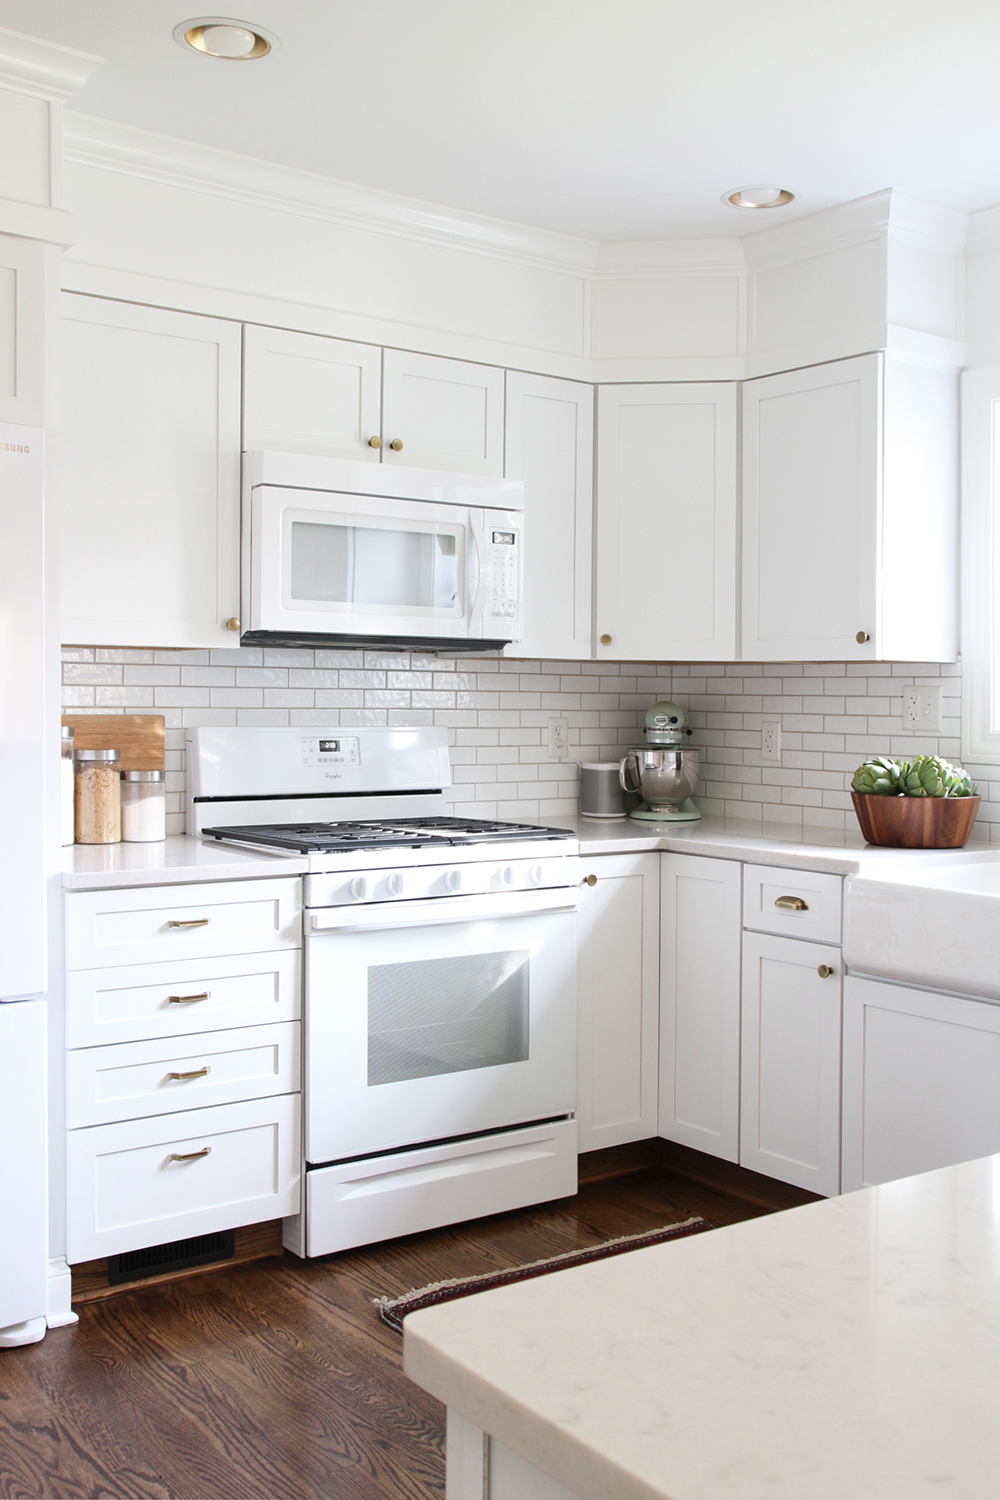 How to Choose Appliances to Fit Your Budget - roomfortuesday.com